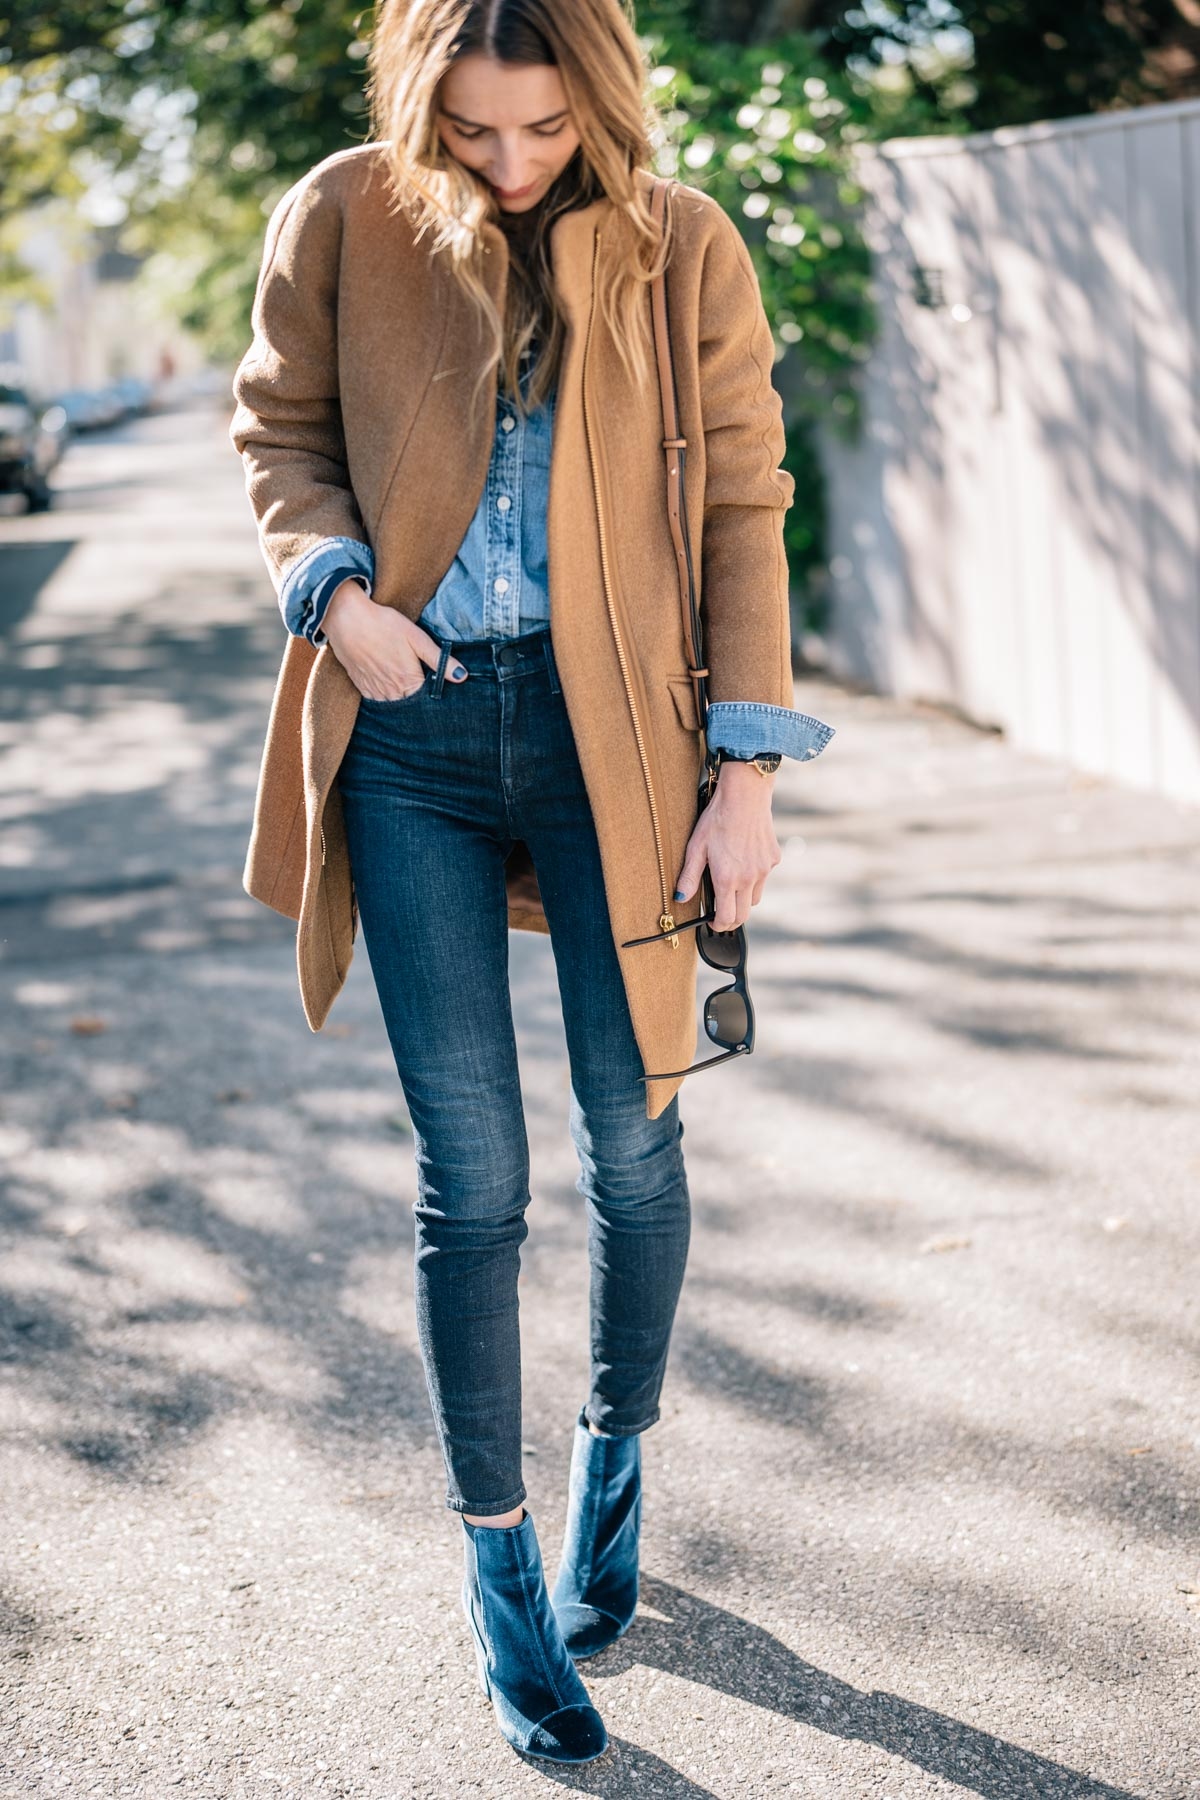 Jess Ann Kirby styles the J.Crew Stadium Cloth Coat with AYR Skinny Jeans and Velvet Booties for fall